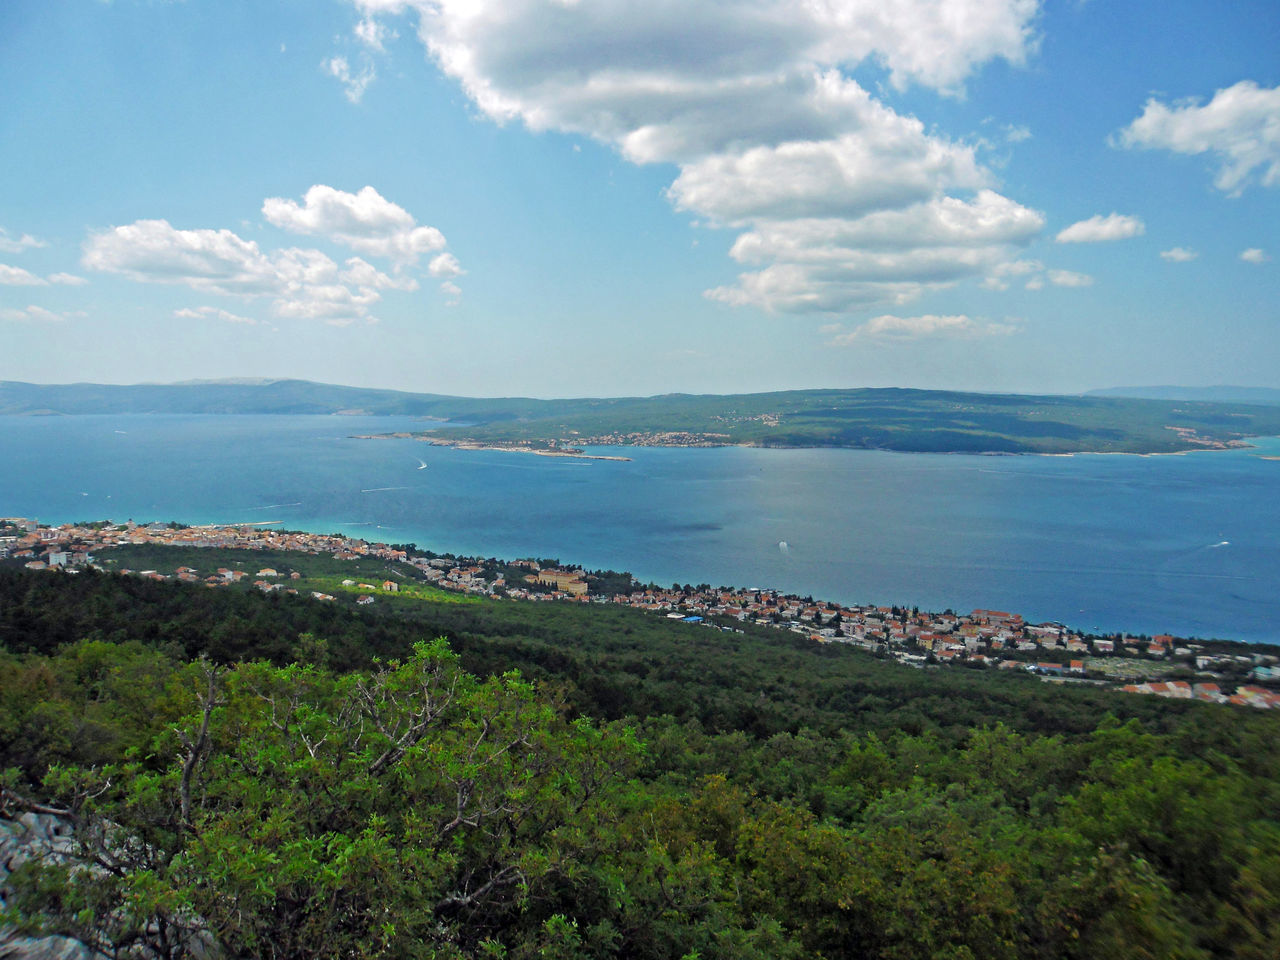 Love Road,view down to the coast,Crikvenica,Croatia,Europe,5 Adriatic Coast Coastline Crikvenica Croatia Day Eu Europe High High Angle View Highclimbing Holydays Love Road Nature Peak Recreation  Scenics Sea Seascape Sky Summer Tourism Tranquility Vacations